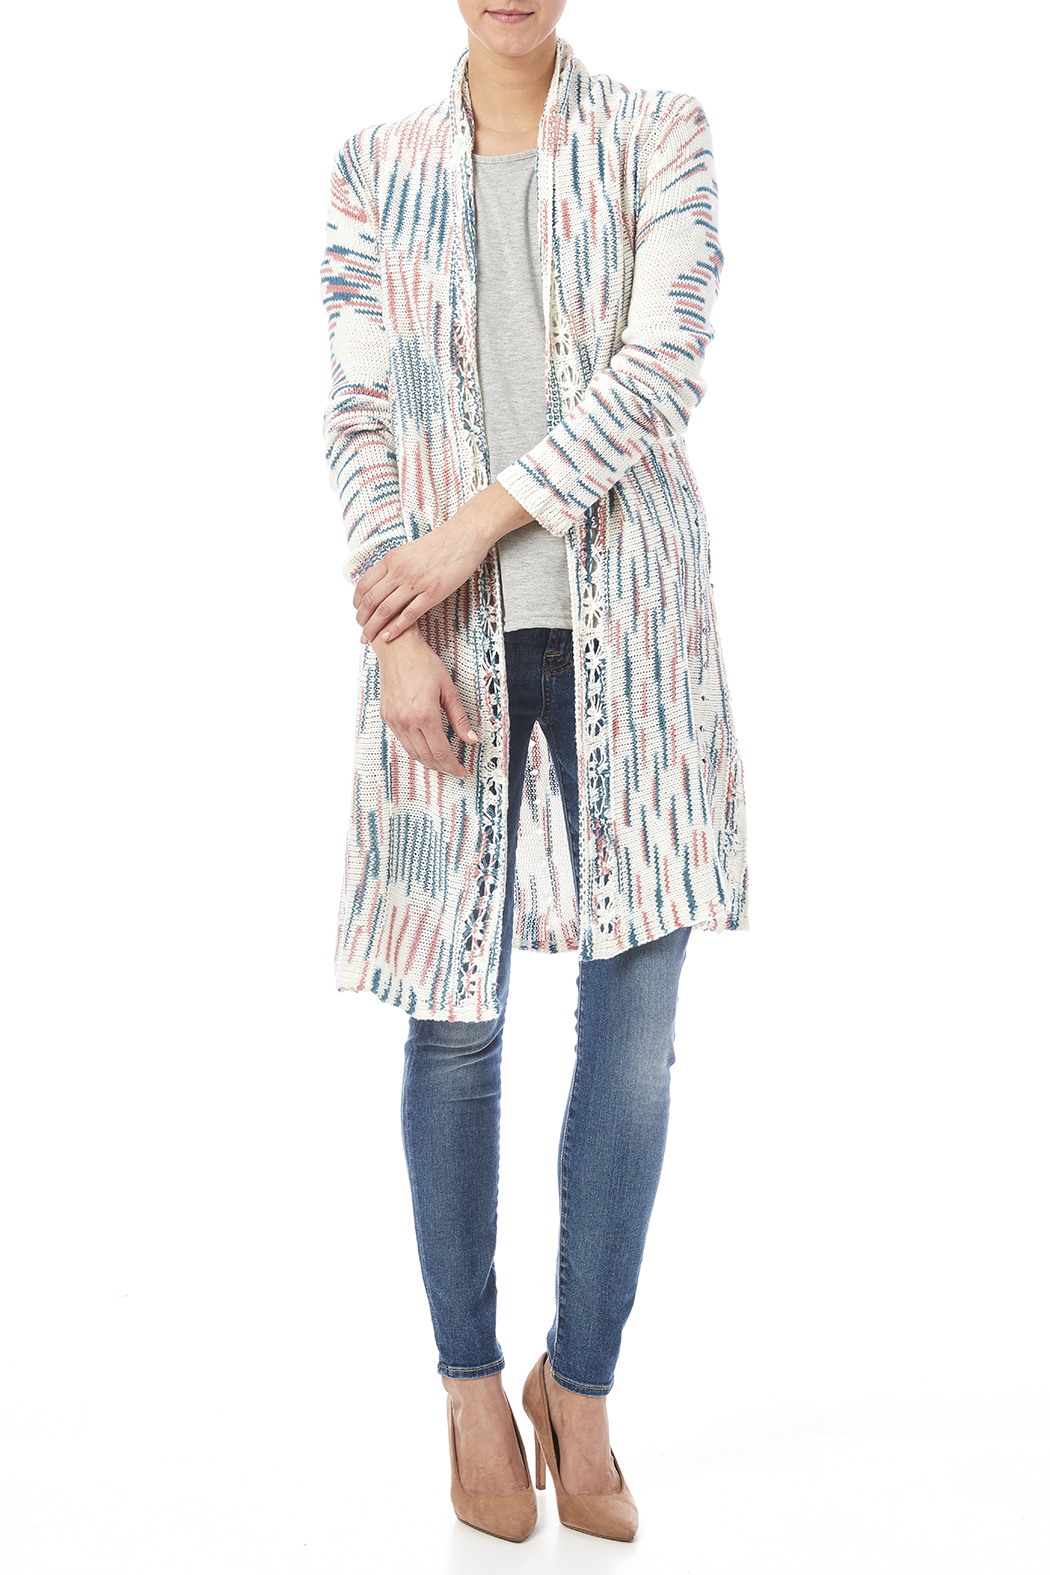 Cardigan – clothing for every age and body shapes